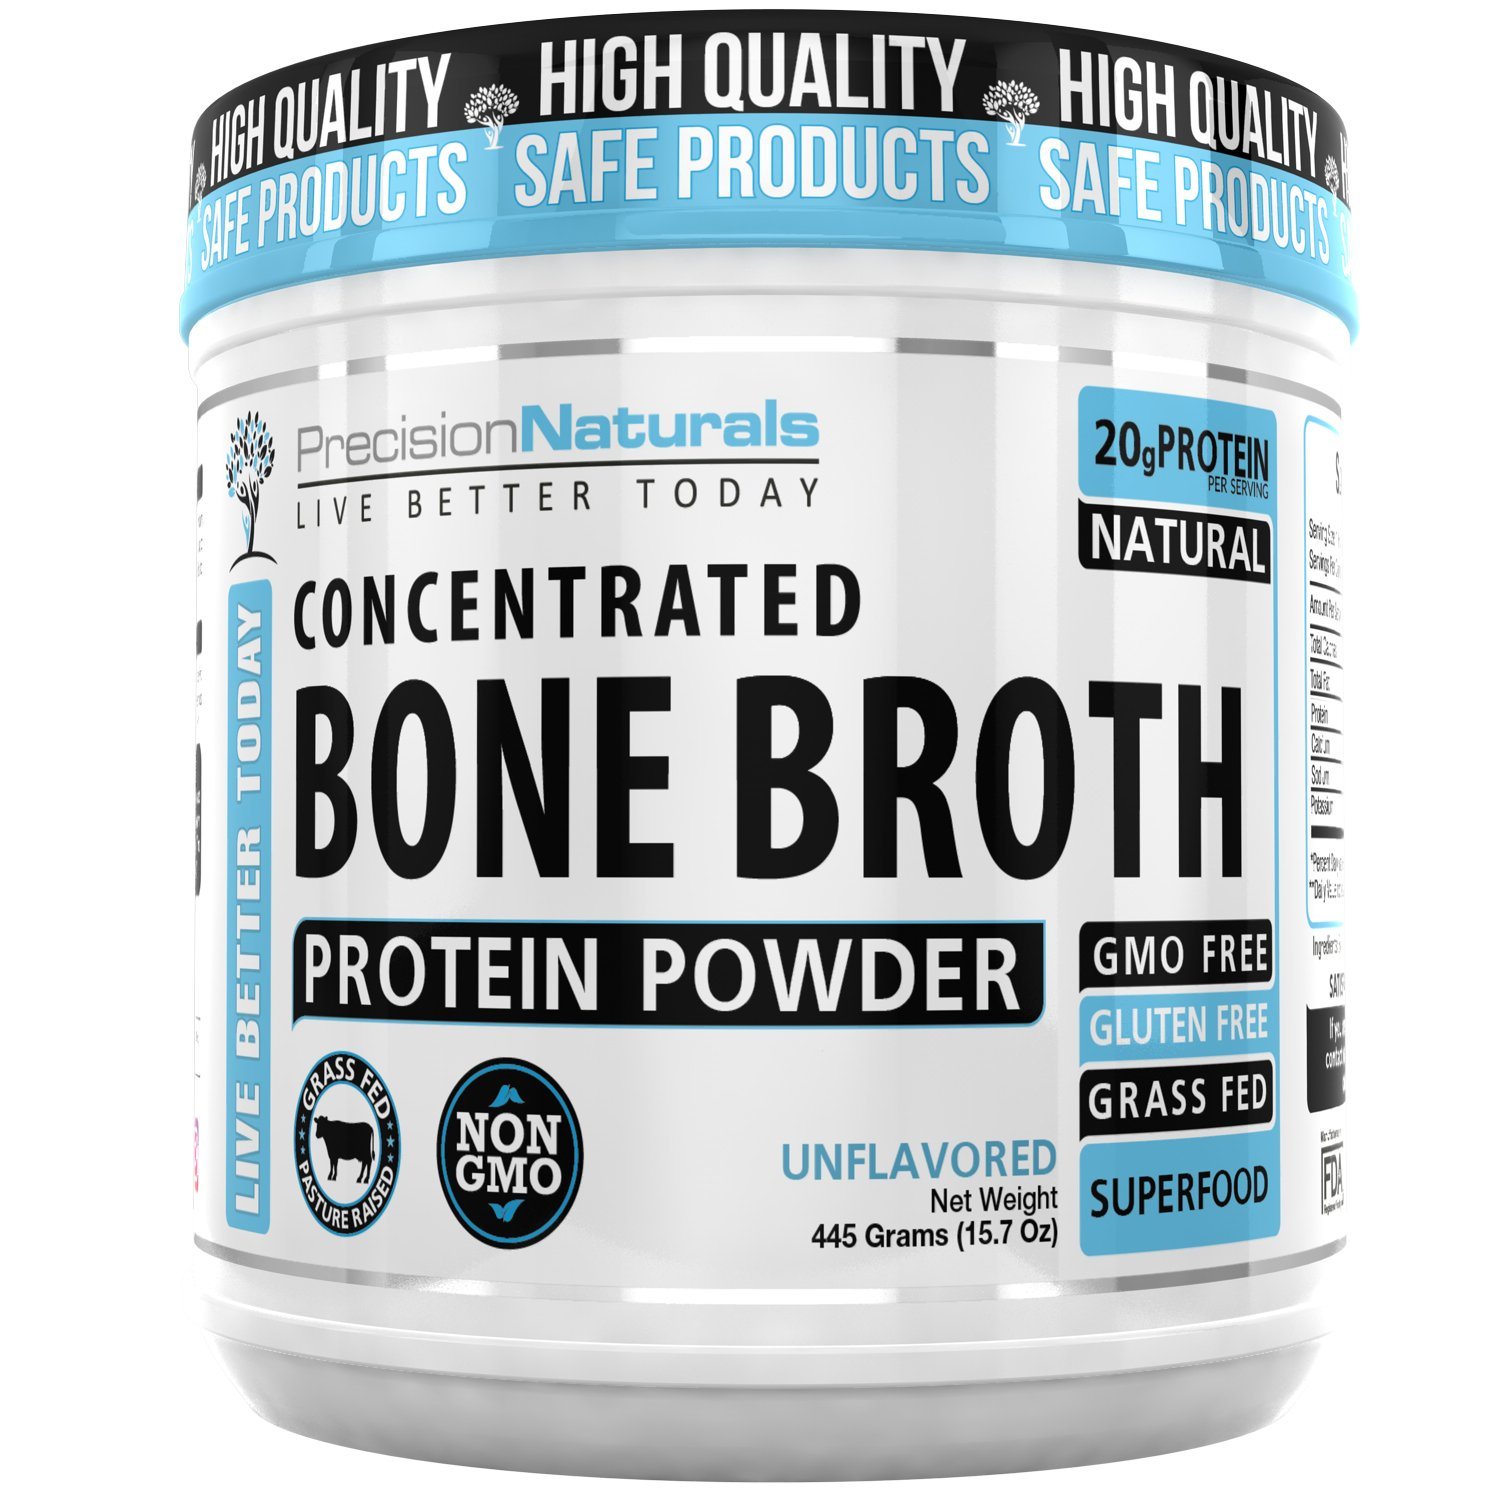 Bone Broth Protein Powder - Paleo/Keto Friendly - Natural Non GMO Grass Fed Beef - Gluten Free Unflavored Ancient Form of Nutrition Made Modern 445g/15.7oz 20 Servings. Collagen Peptides by Precision Naturals